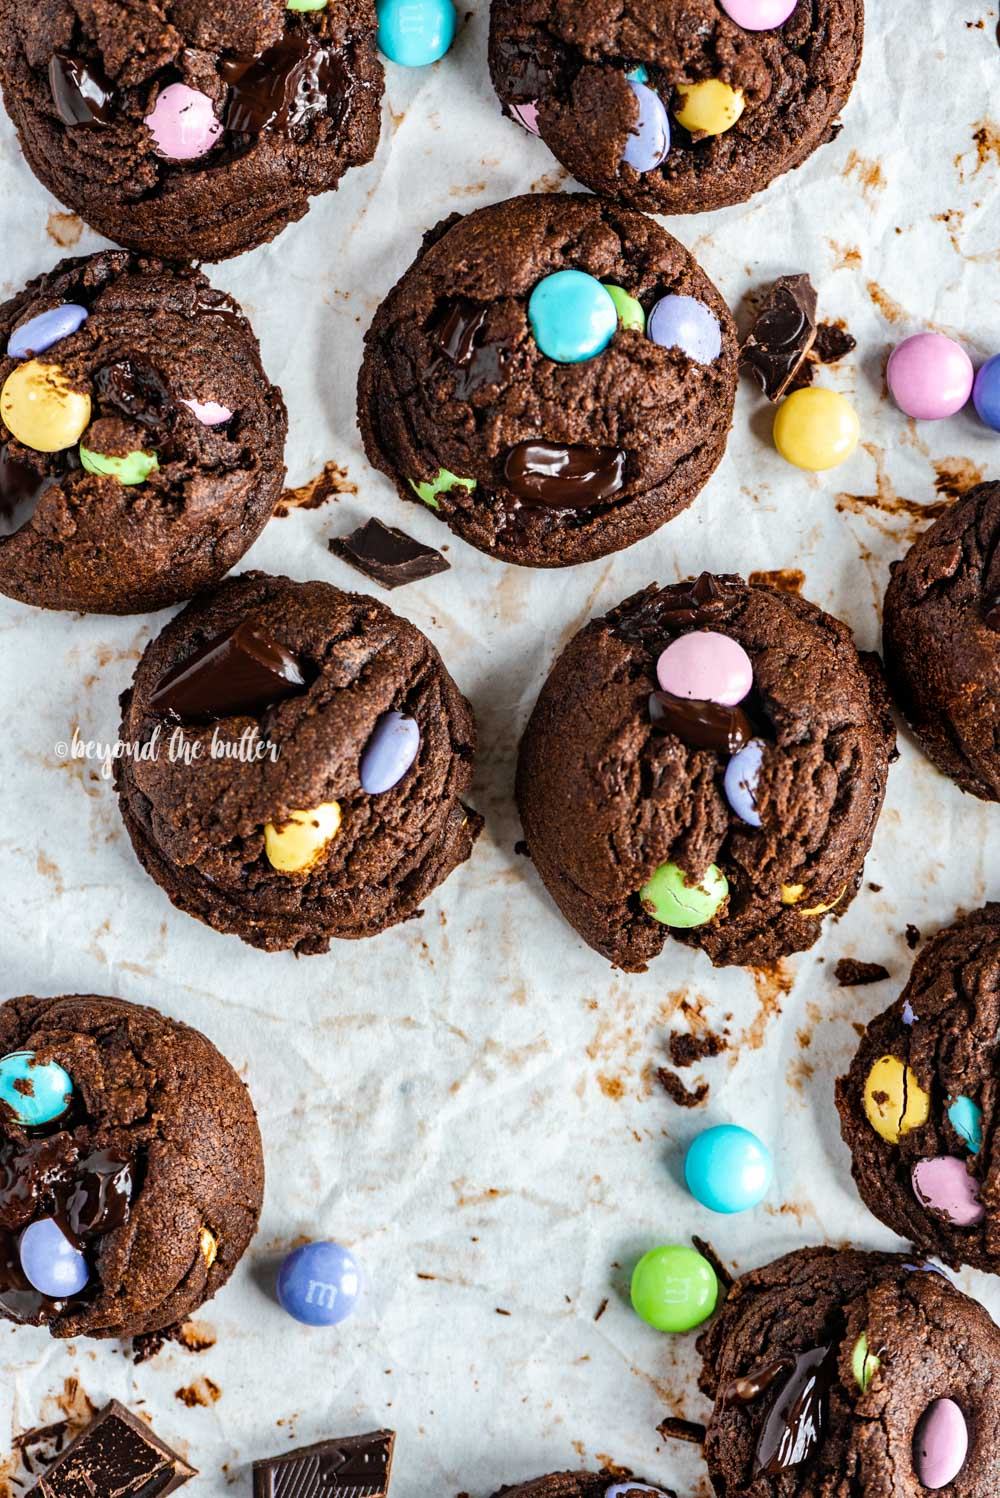 Overhead image of just baked double chocolate chunk m&m cookies on a parchment lined baking sheet | All Images © Beyond the Butter™